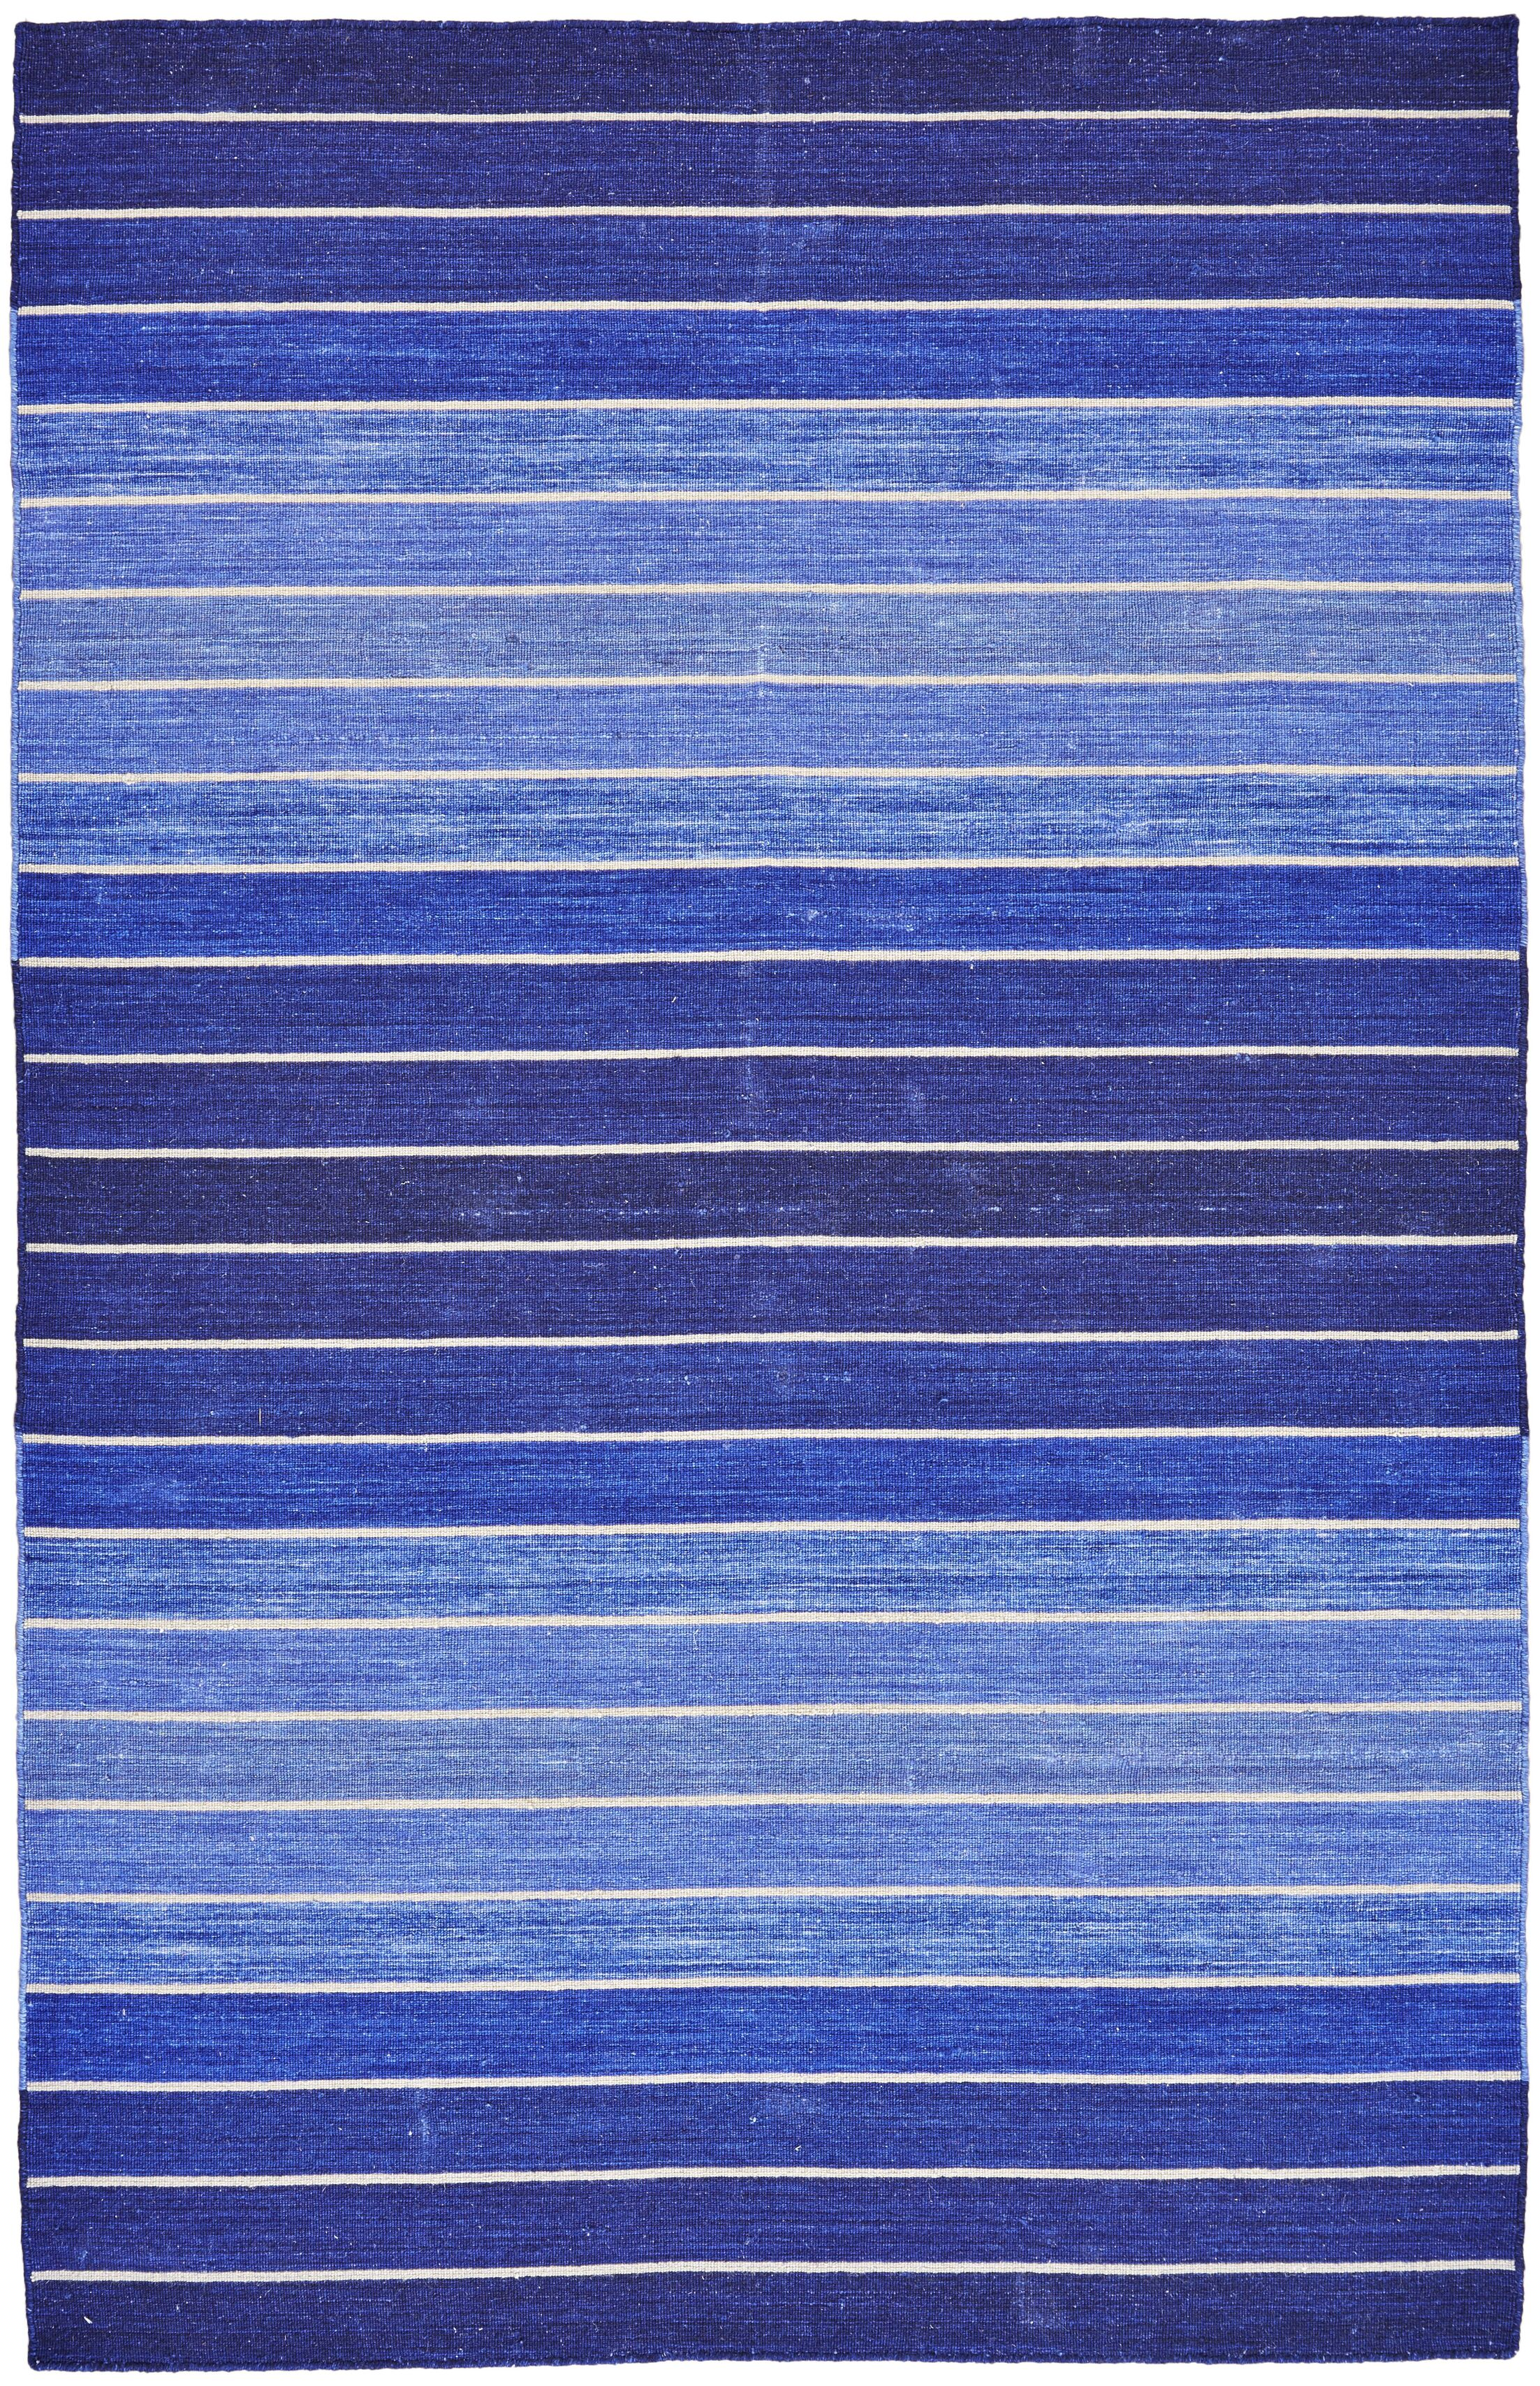 Mcdonald Hand-Tufted Cotton Blue Area Rug Rug Size: Square 9'